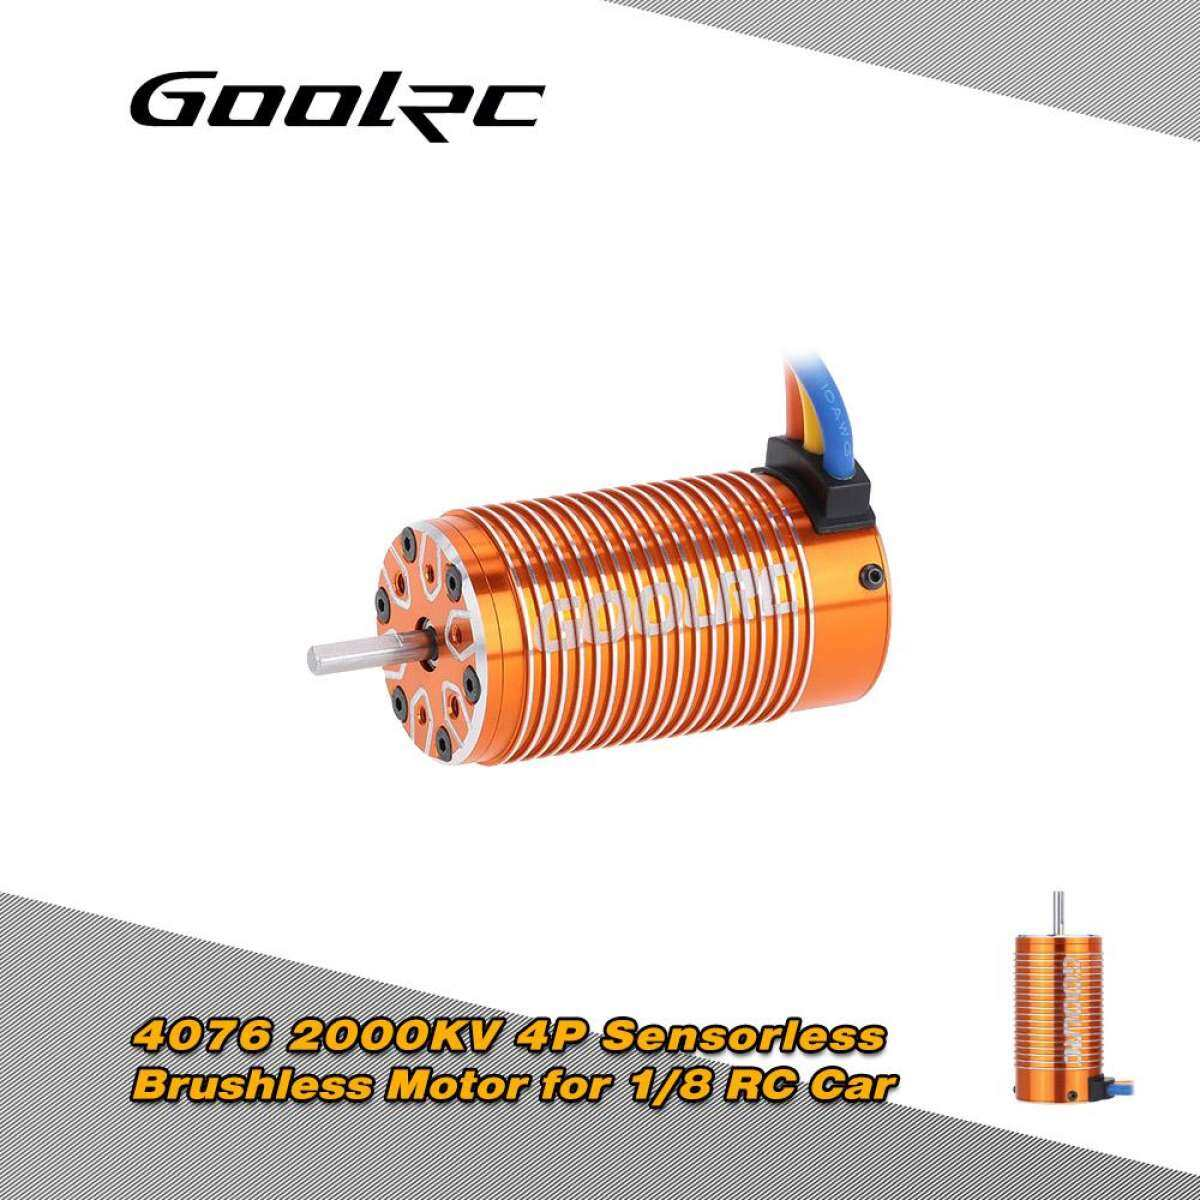 Goolrc 4076 2000kv 4p Sensorless Brushless Motor For 1/8 Rc Monster Truck By Kukuobopu.